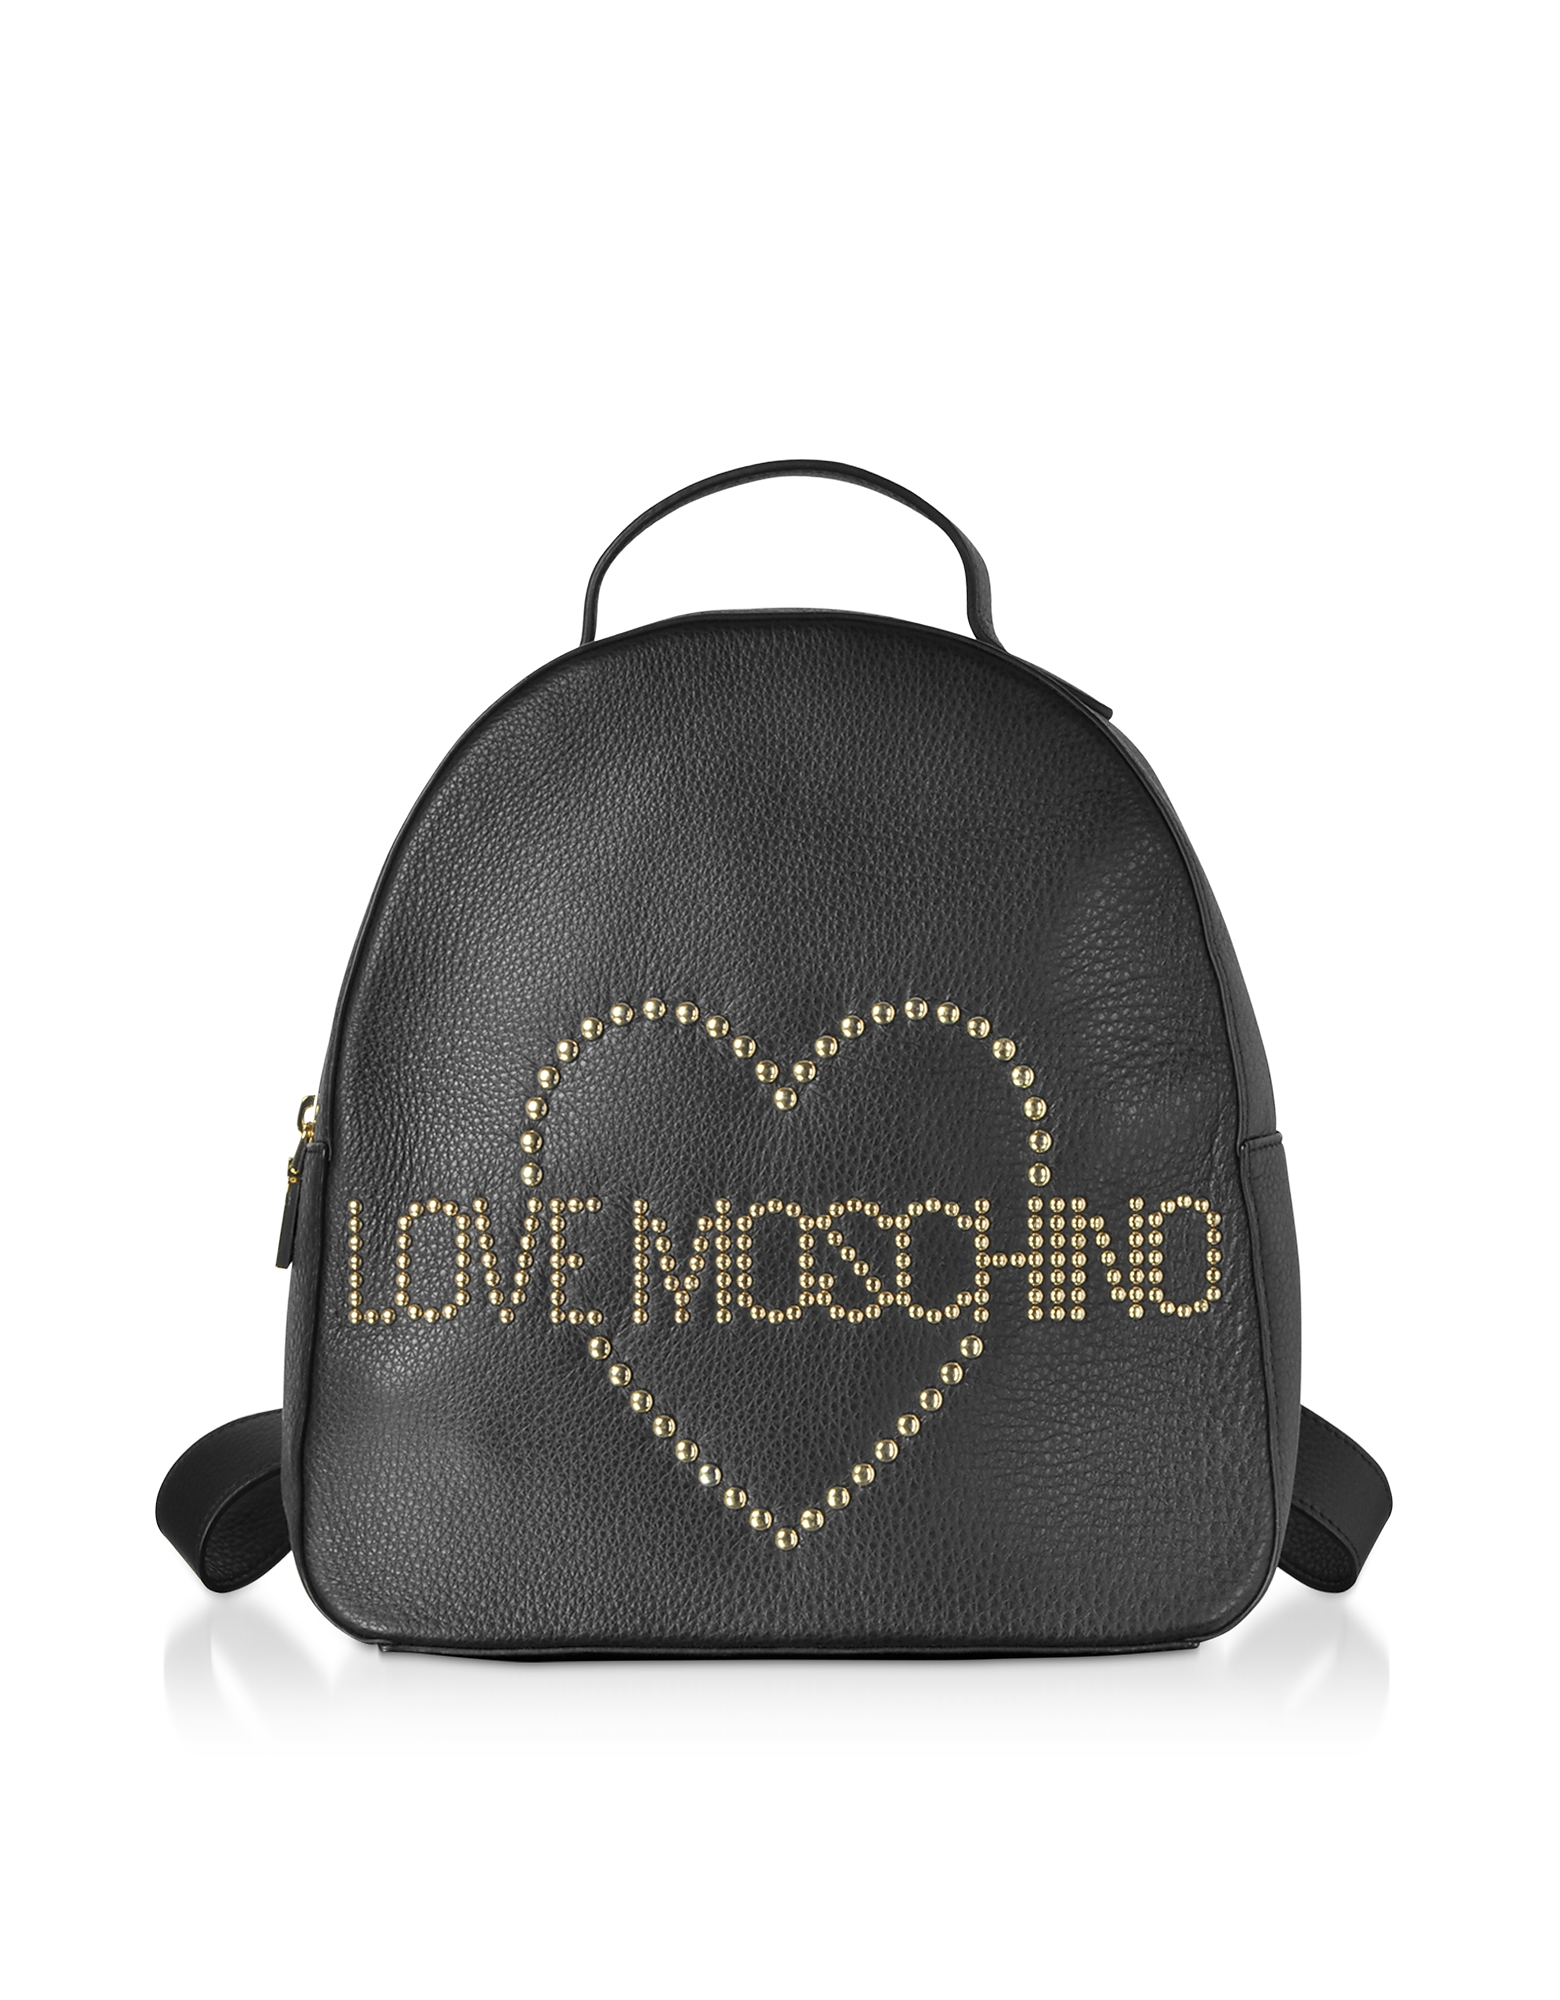 Love Moschino Designer Handbags, Black Leather Backpack w/ Golden Studs